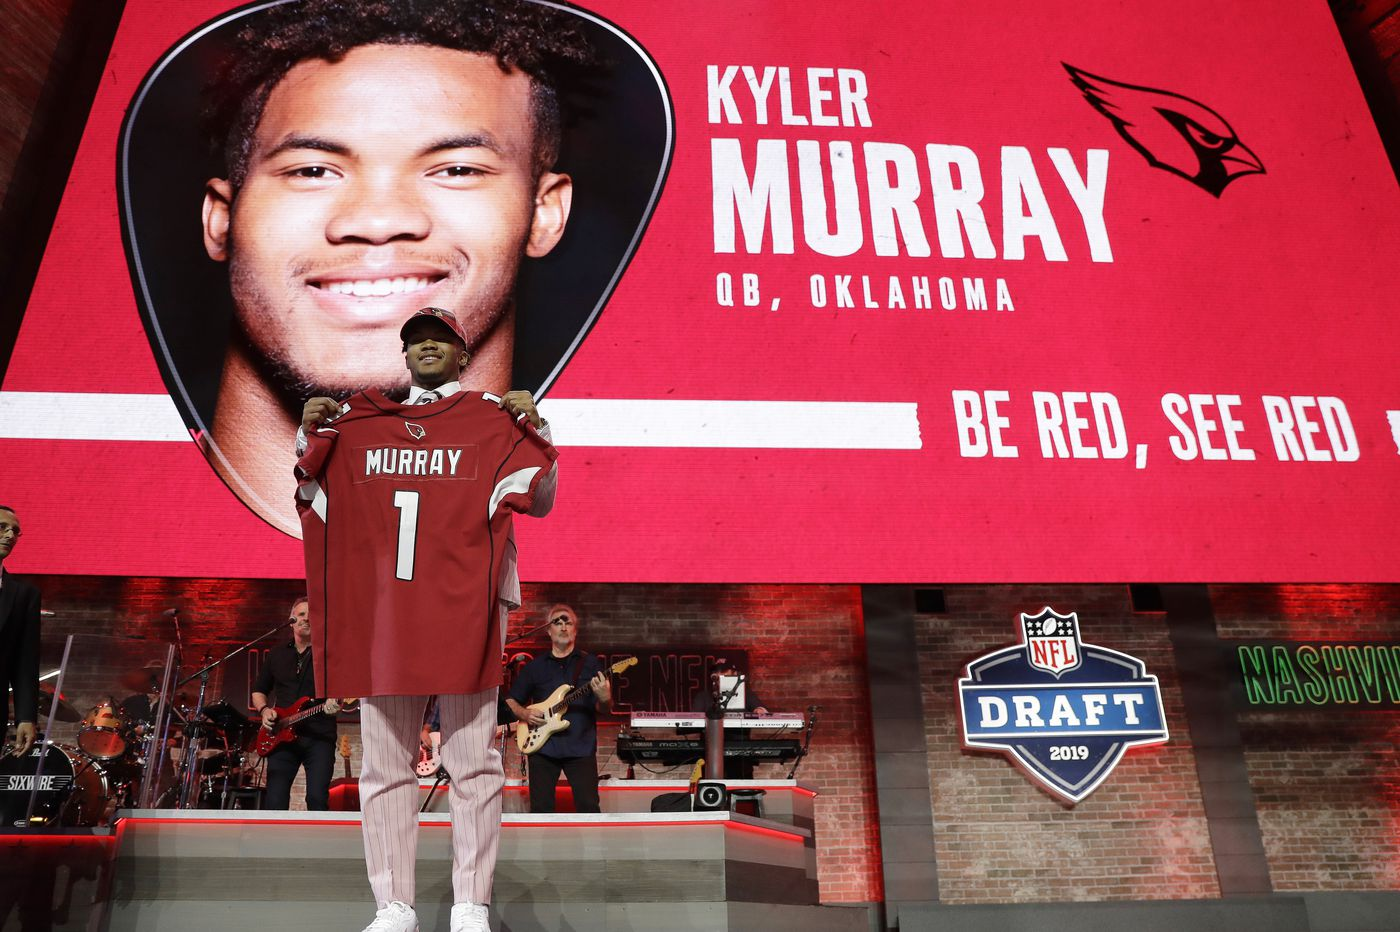 c14599be498 NFL draft 2019: Cardinals make Kyler Murray first overall pick, Giants and  Redskins get their QBs, ...